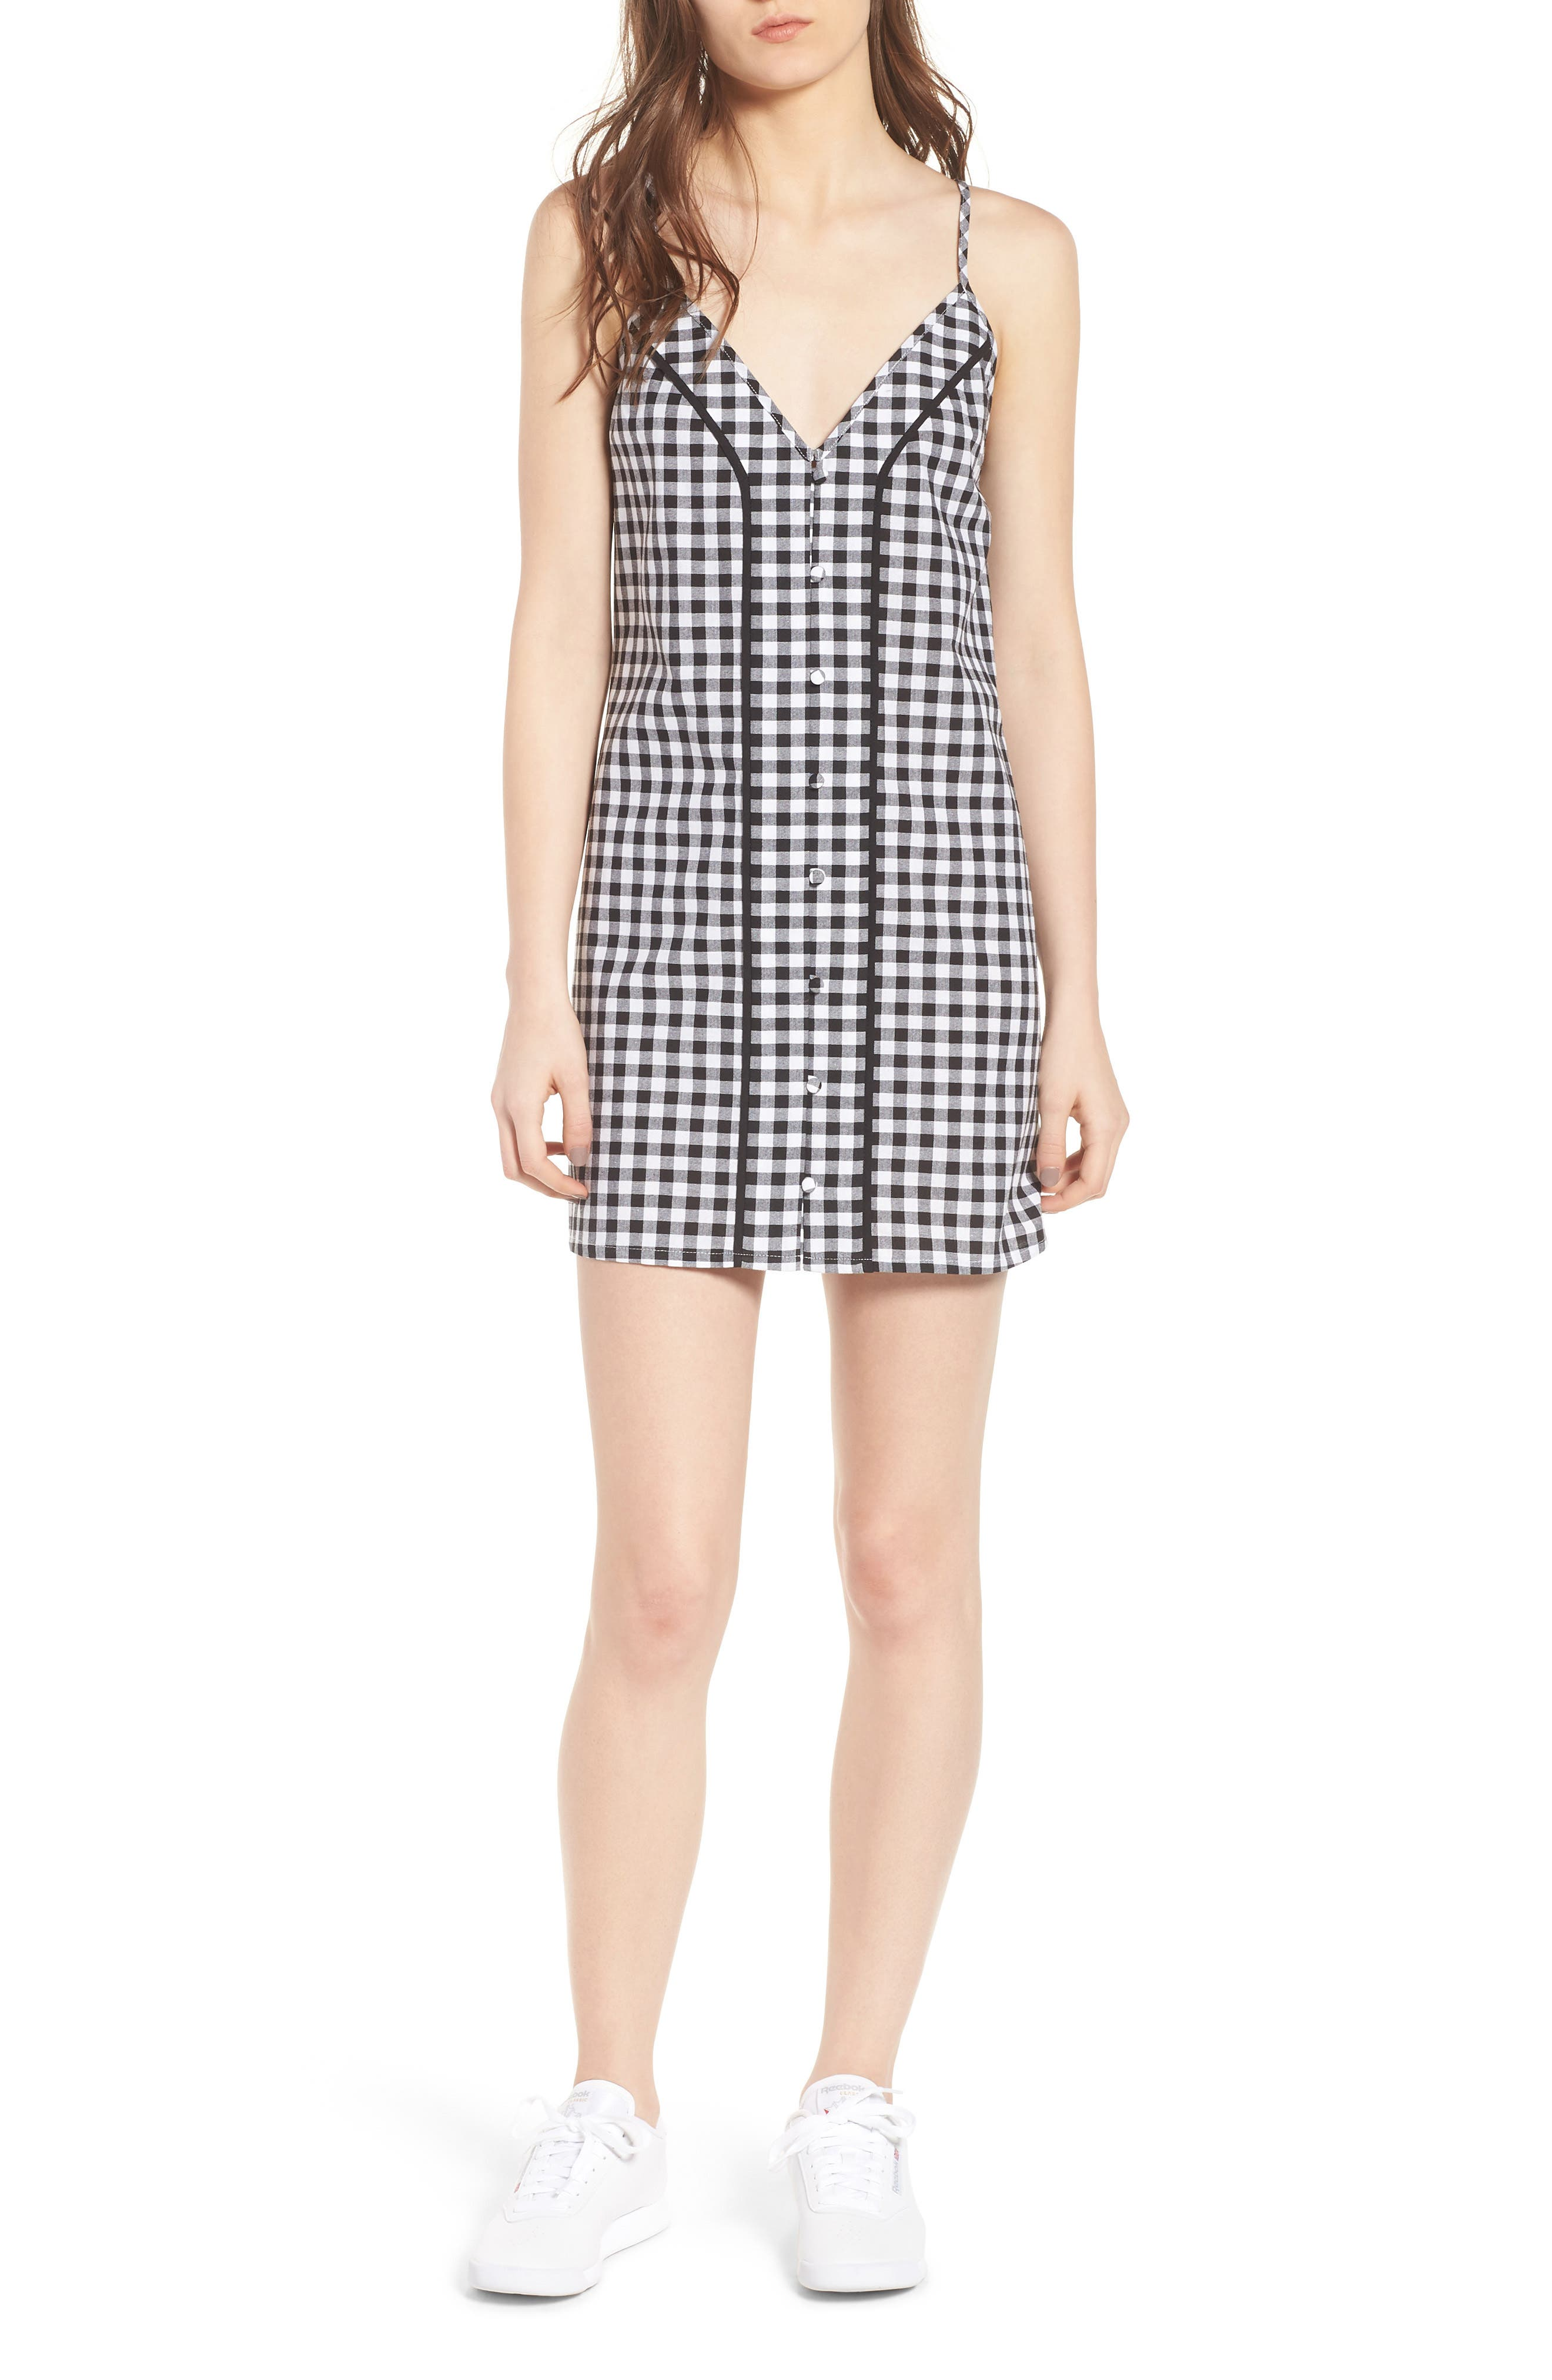 The Fifth Label Idyllic Gingham Dress